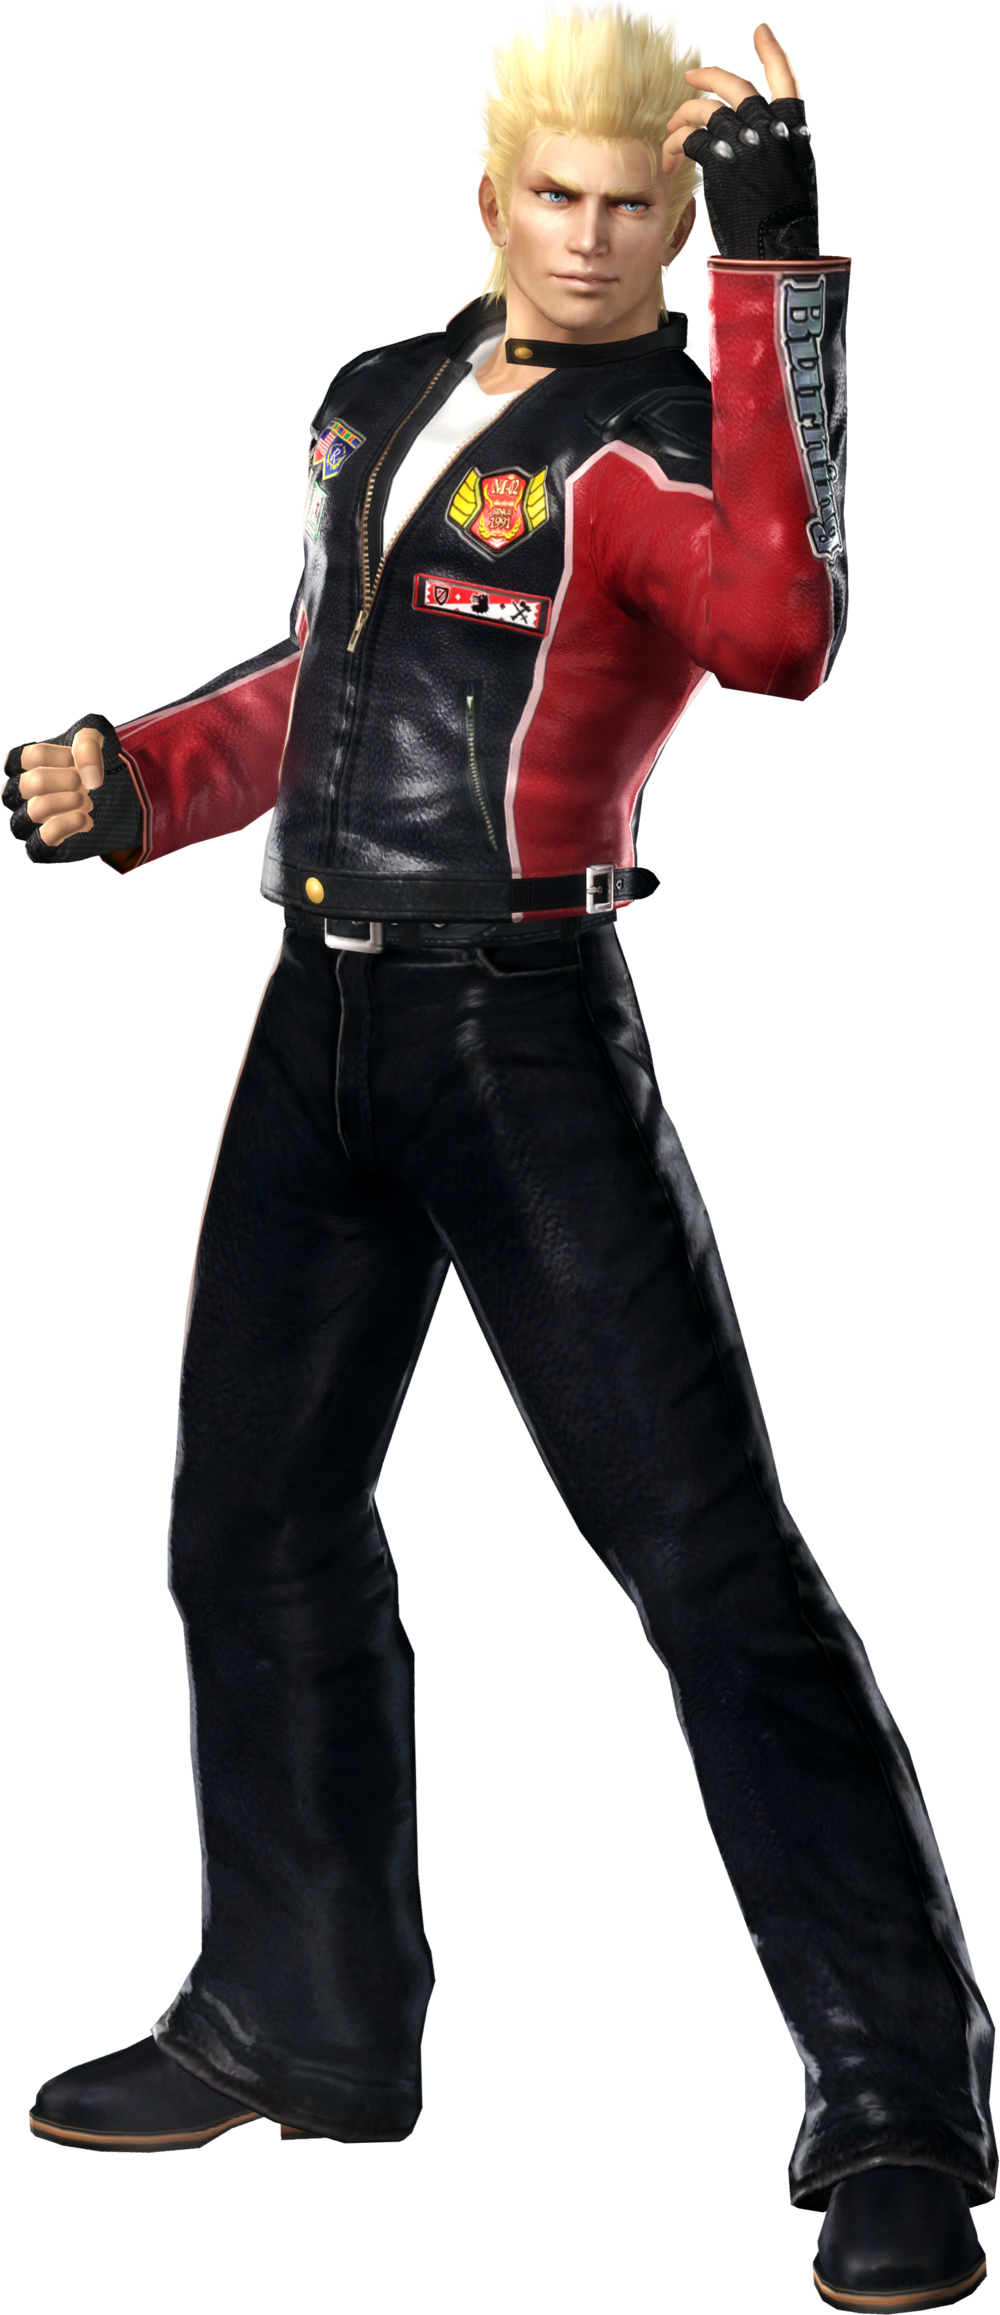 http://img3.wikia.nocookie.net/__cb20130616173654/deadoralive/images/thumb/0/02/DOA5U_Jacky_Render.png/1000px-DOA5U_Jacky_Render.png